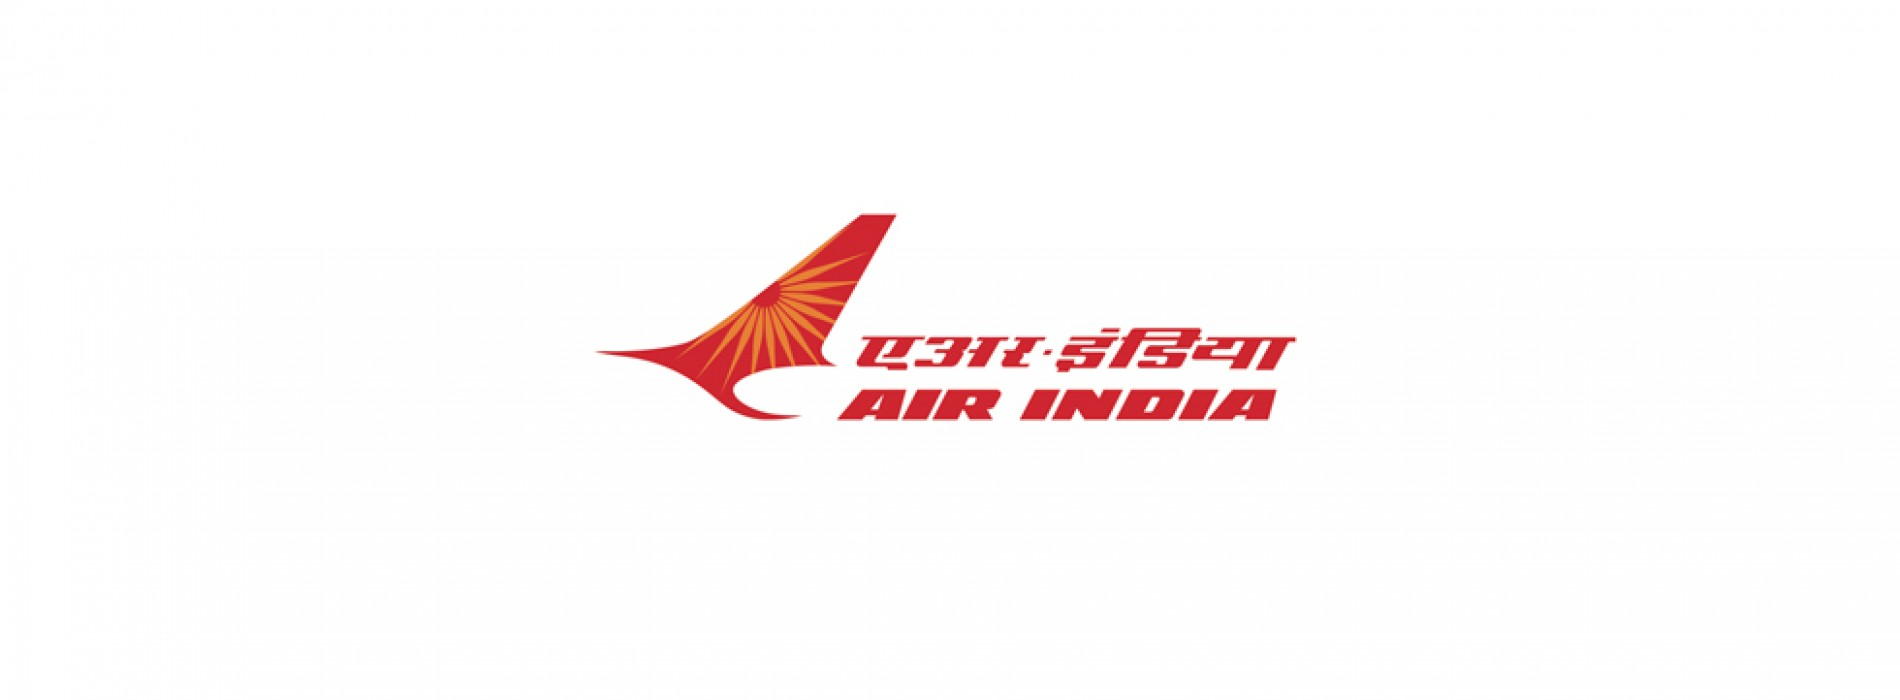 Air India to operate additional flights on Tirupati-Hyderabad route